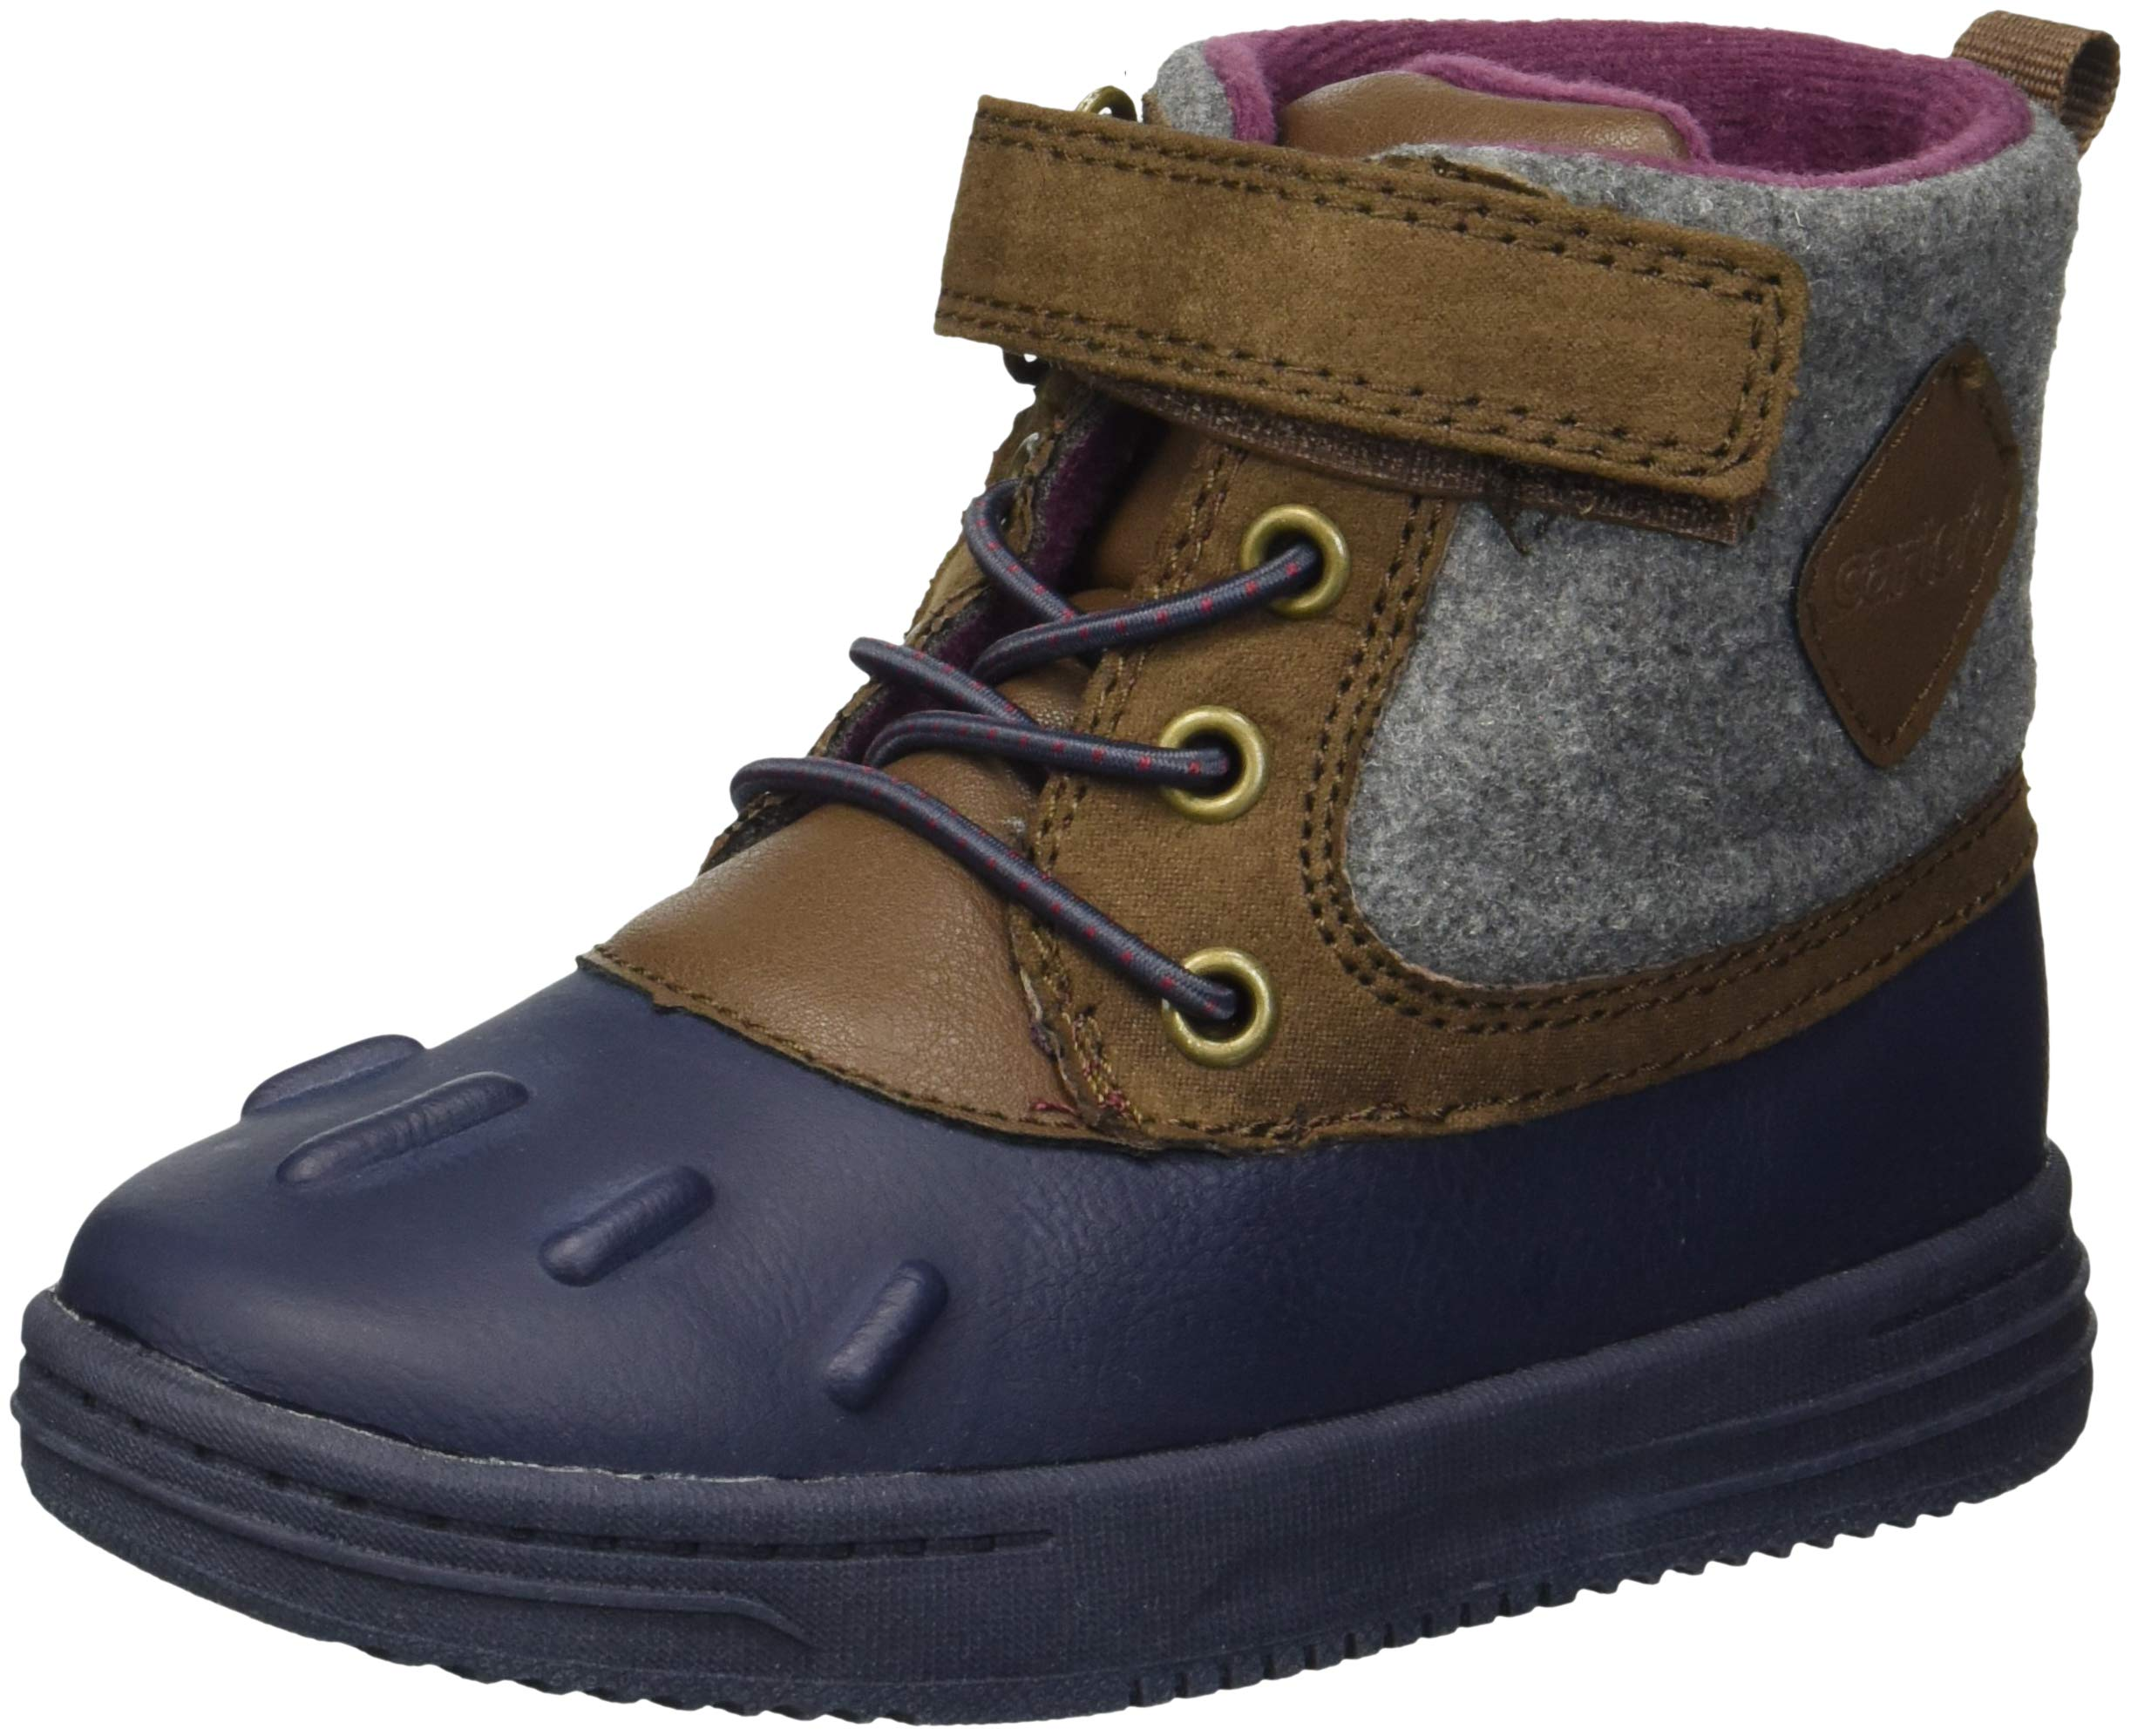 Carter's Boys' Bay2-B Duck Fashion Boot, Navy, 6 M US Toddler